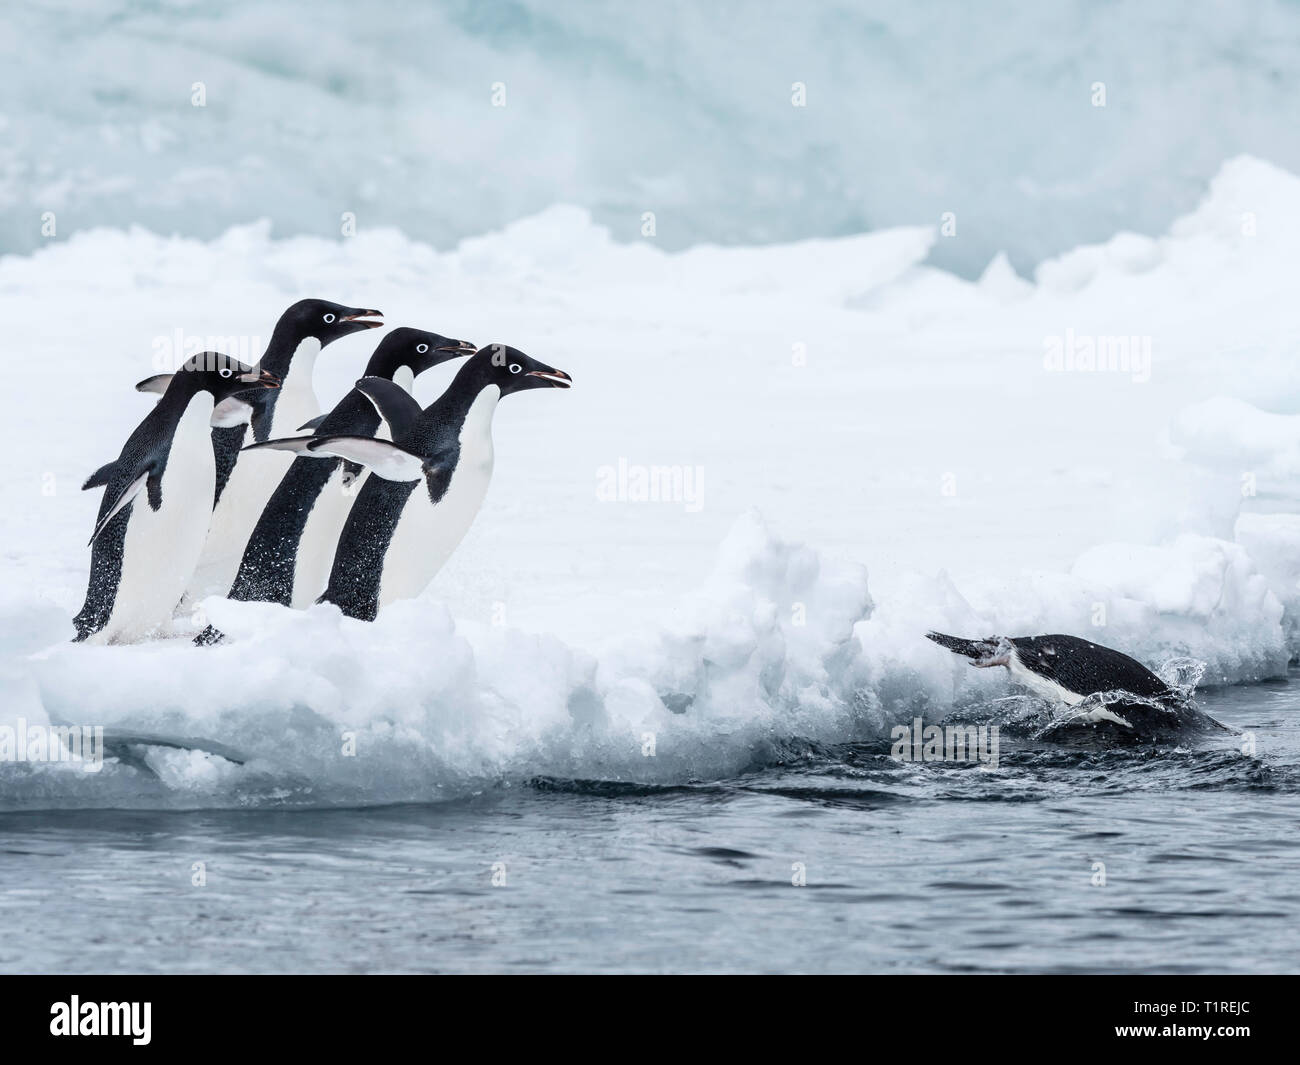 Adelie penguins (Pygoscelis adeliae) leaping into the sea from ice at Brown Bluff, Antarctic Sound, Antarctica - Stock Image